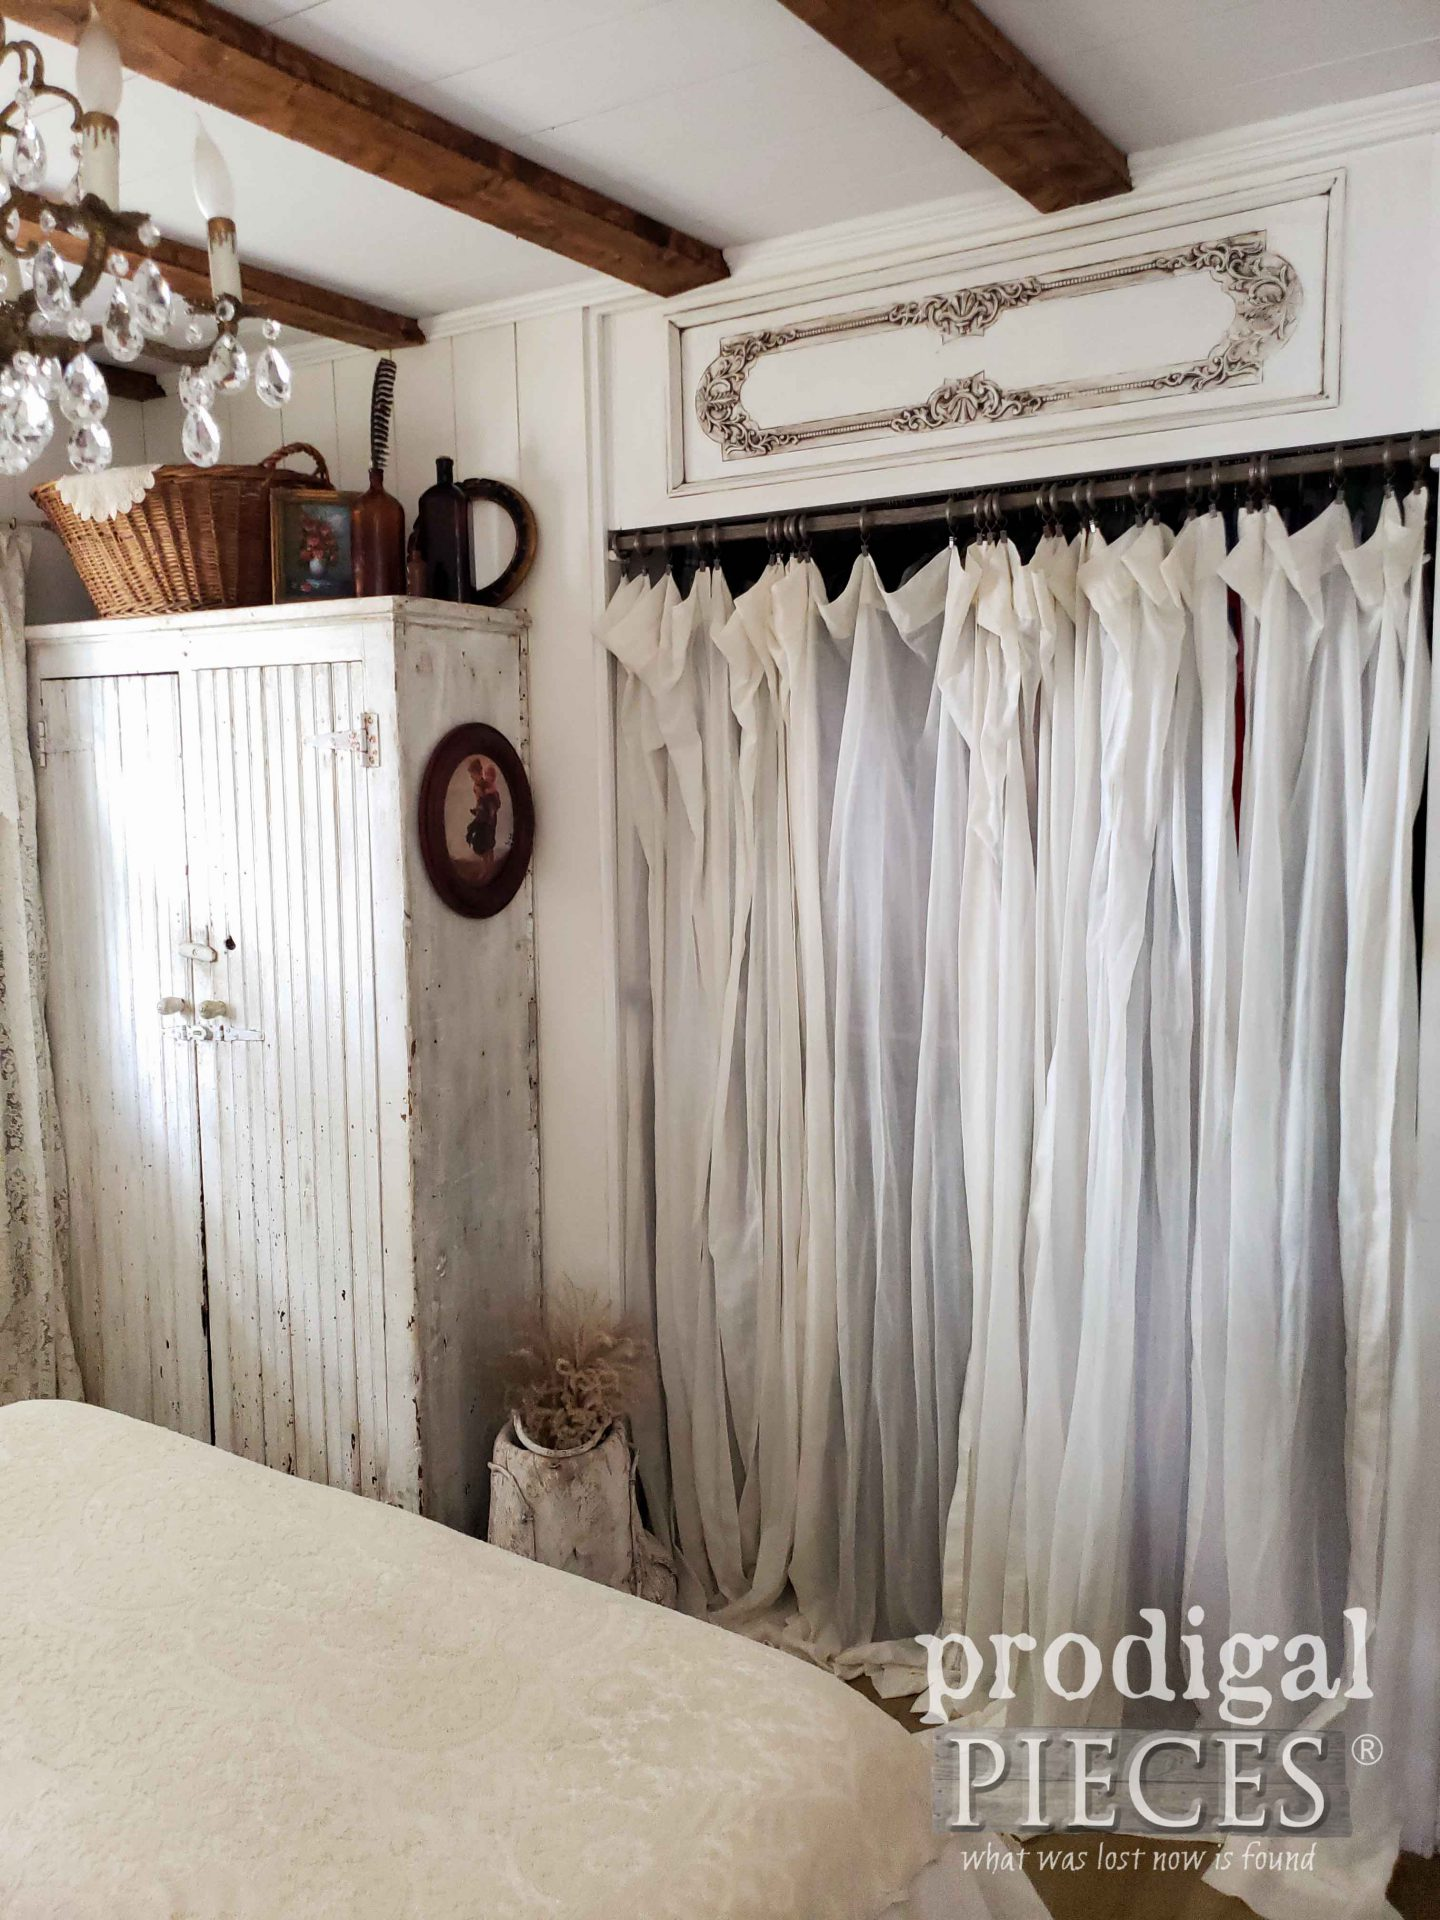 Reclaimed Piano Face as Closet Transom in Farmhouse Bedroom by Larissa of Prodigal Pieces | prodigalpieces.com #prodigalpieces #bedroom #home #farmhouse #homedecor